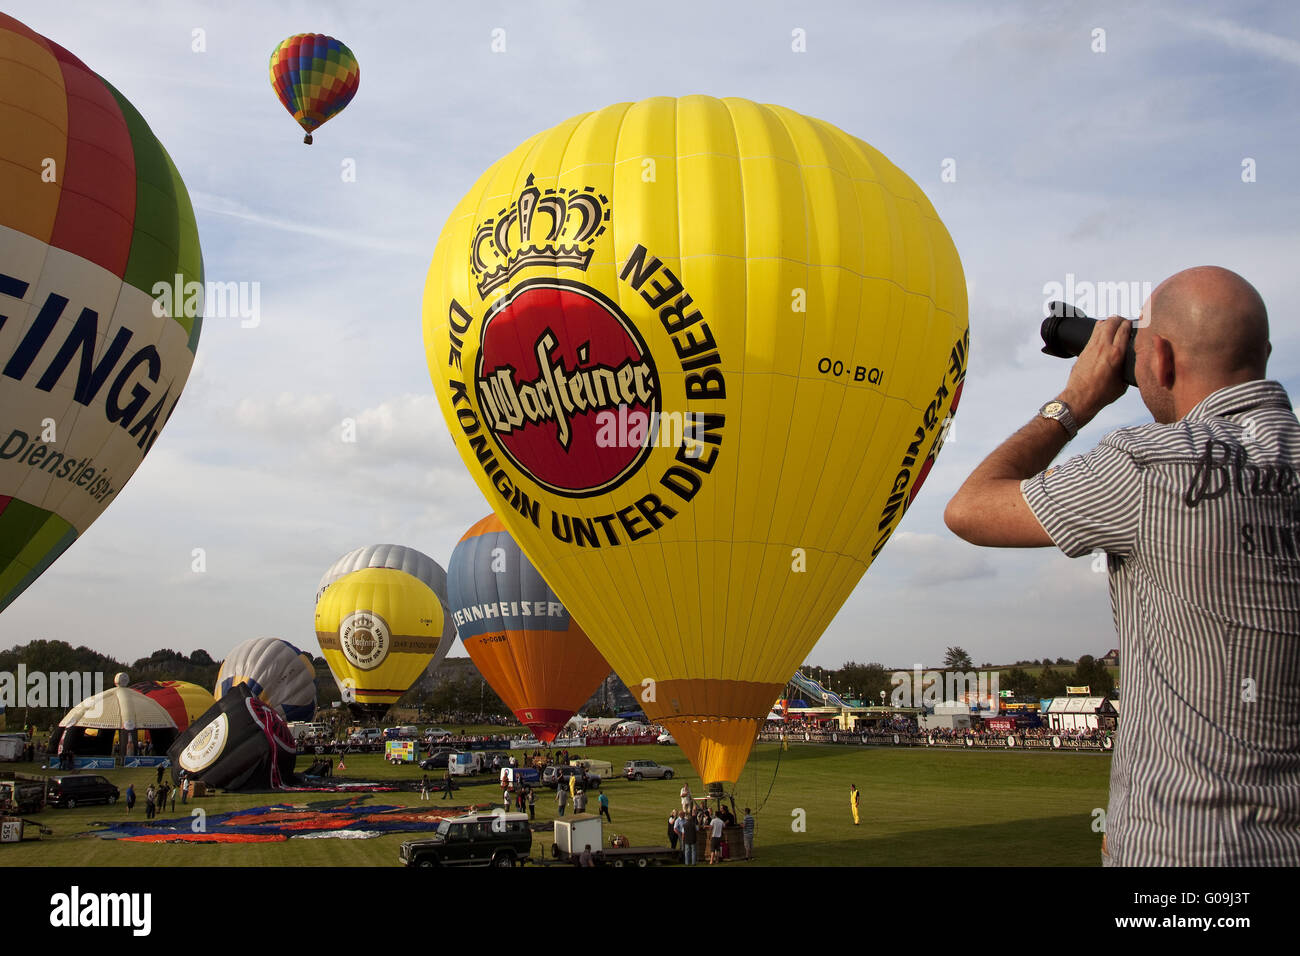 Hot air balloons in the Montgolfiade in Warstein. - Stock Image